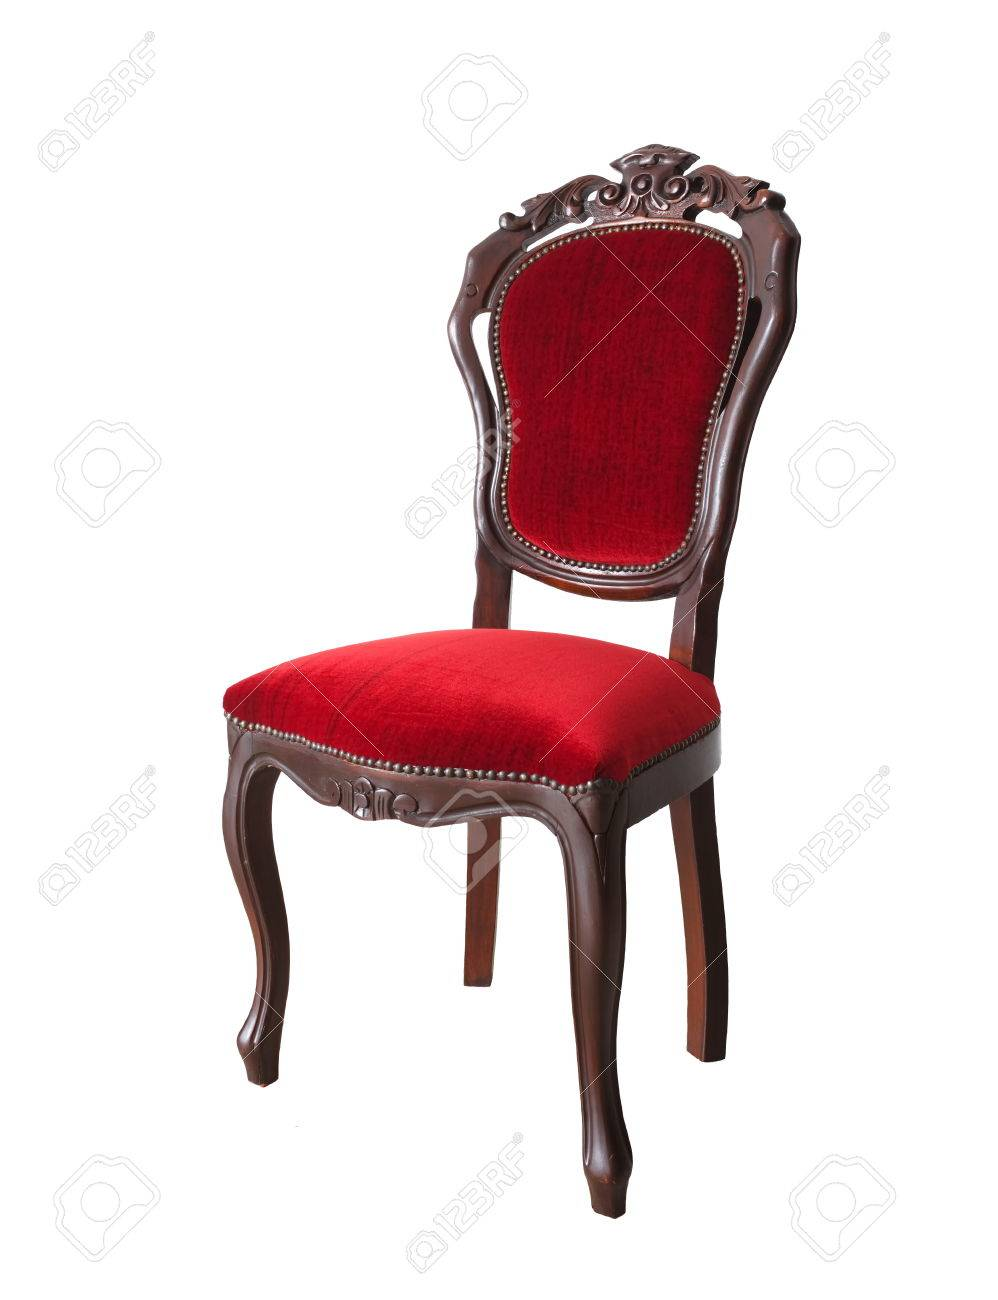 Antique Red Chair - Antique Red Chair Antique Furniture